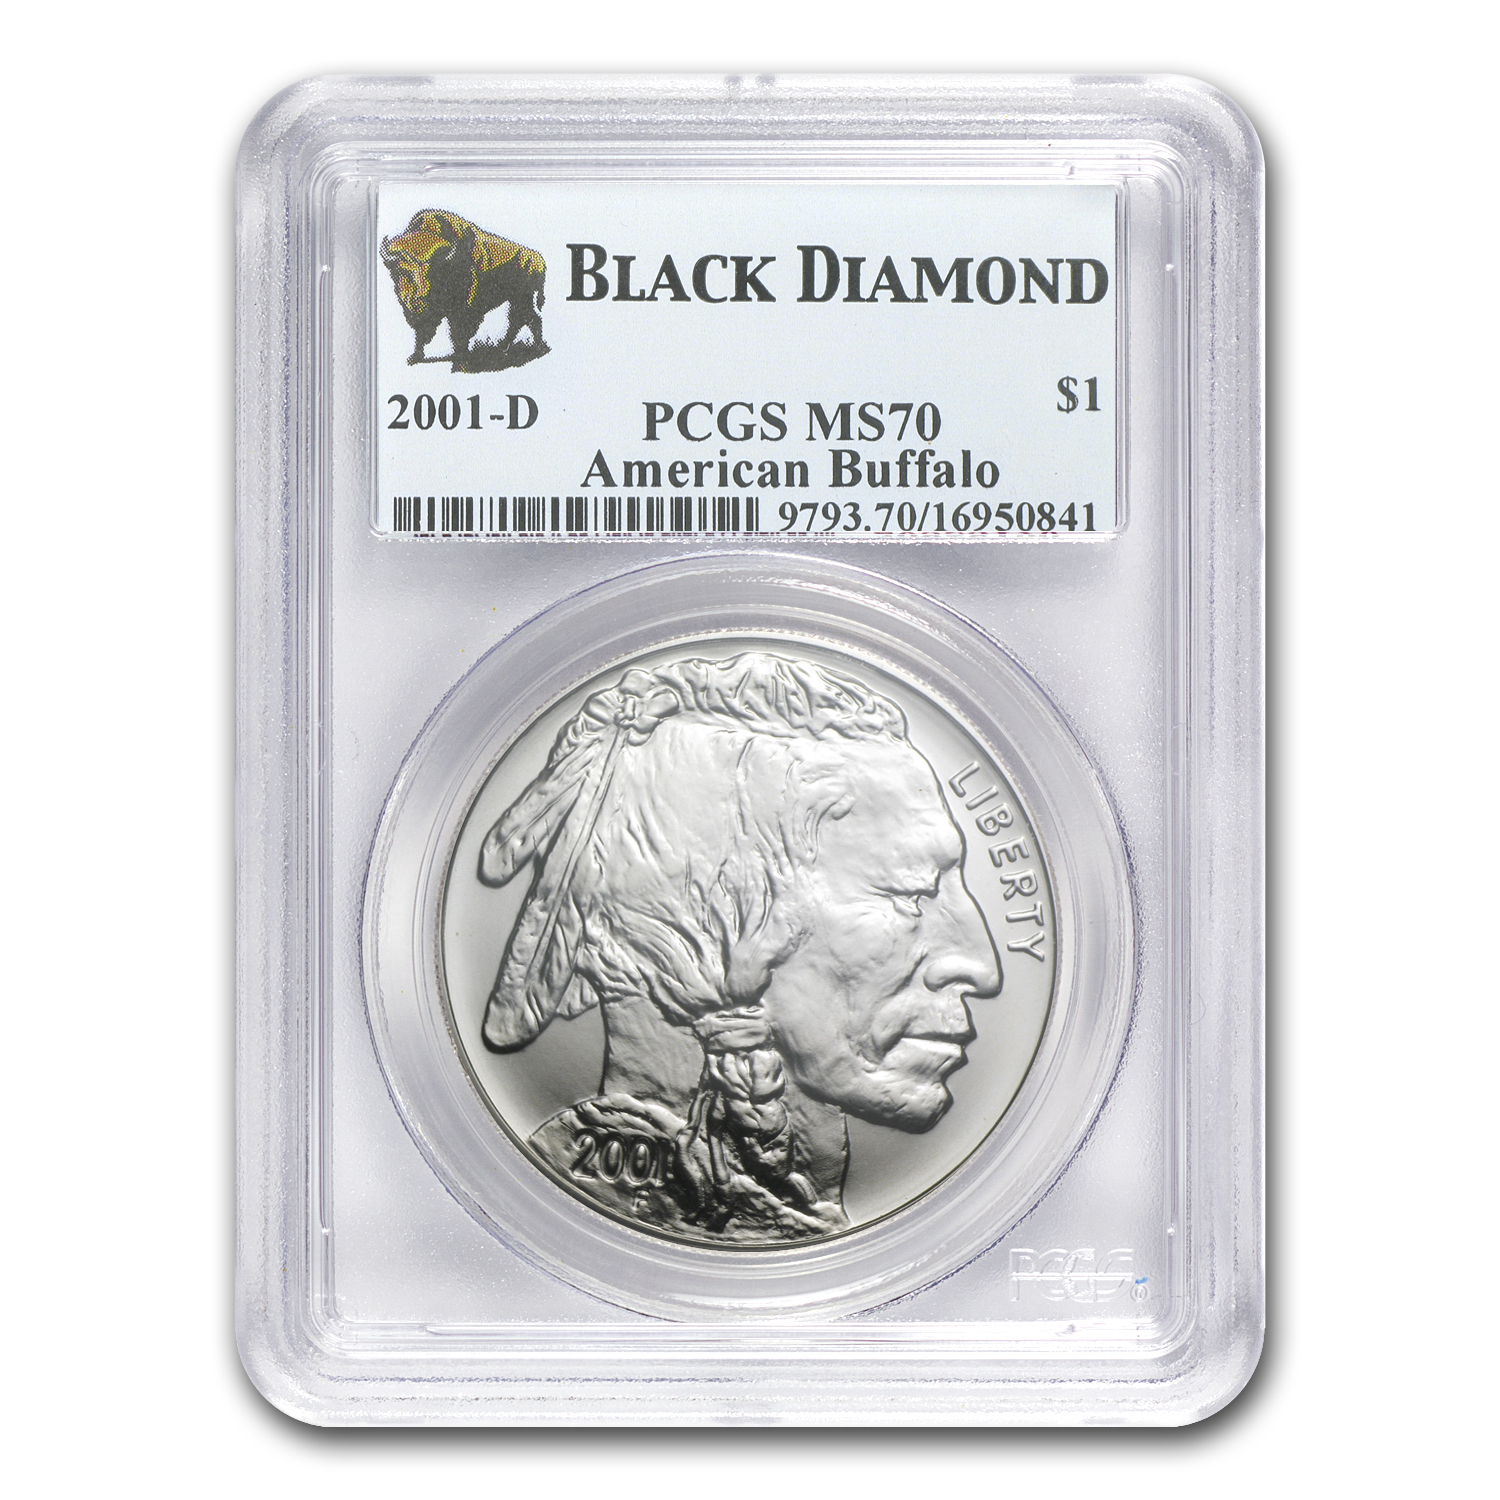 2001-D Buffalo Black Diamond $1 Silver Commemorative MS-70 PCGS